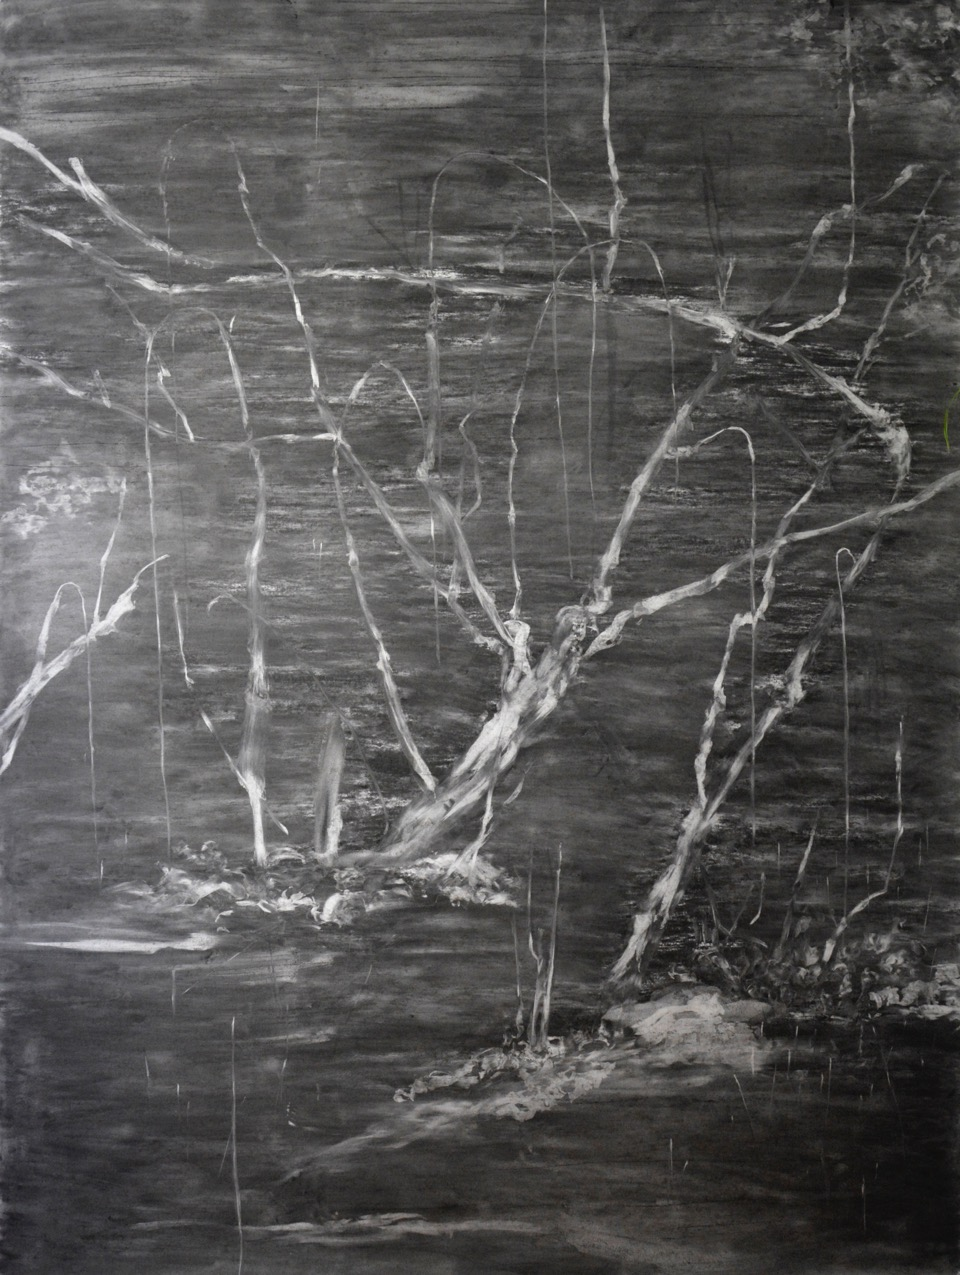 FABRICE CAZENAVE Paysage Aveugle - Large, 2015, Charcoal on 224 gsm Clairfontaine drawing paper 200 x 152cm